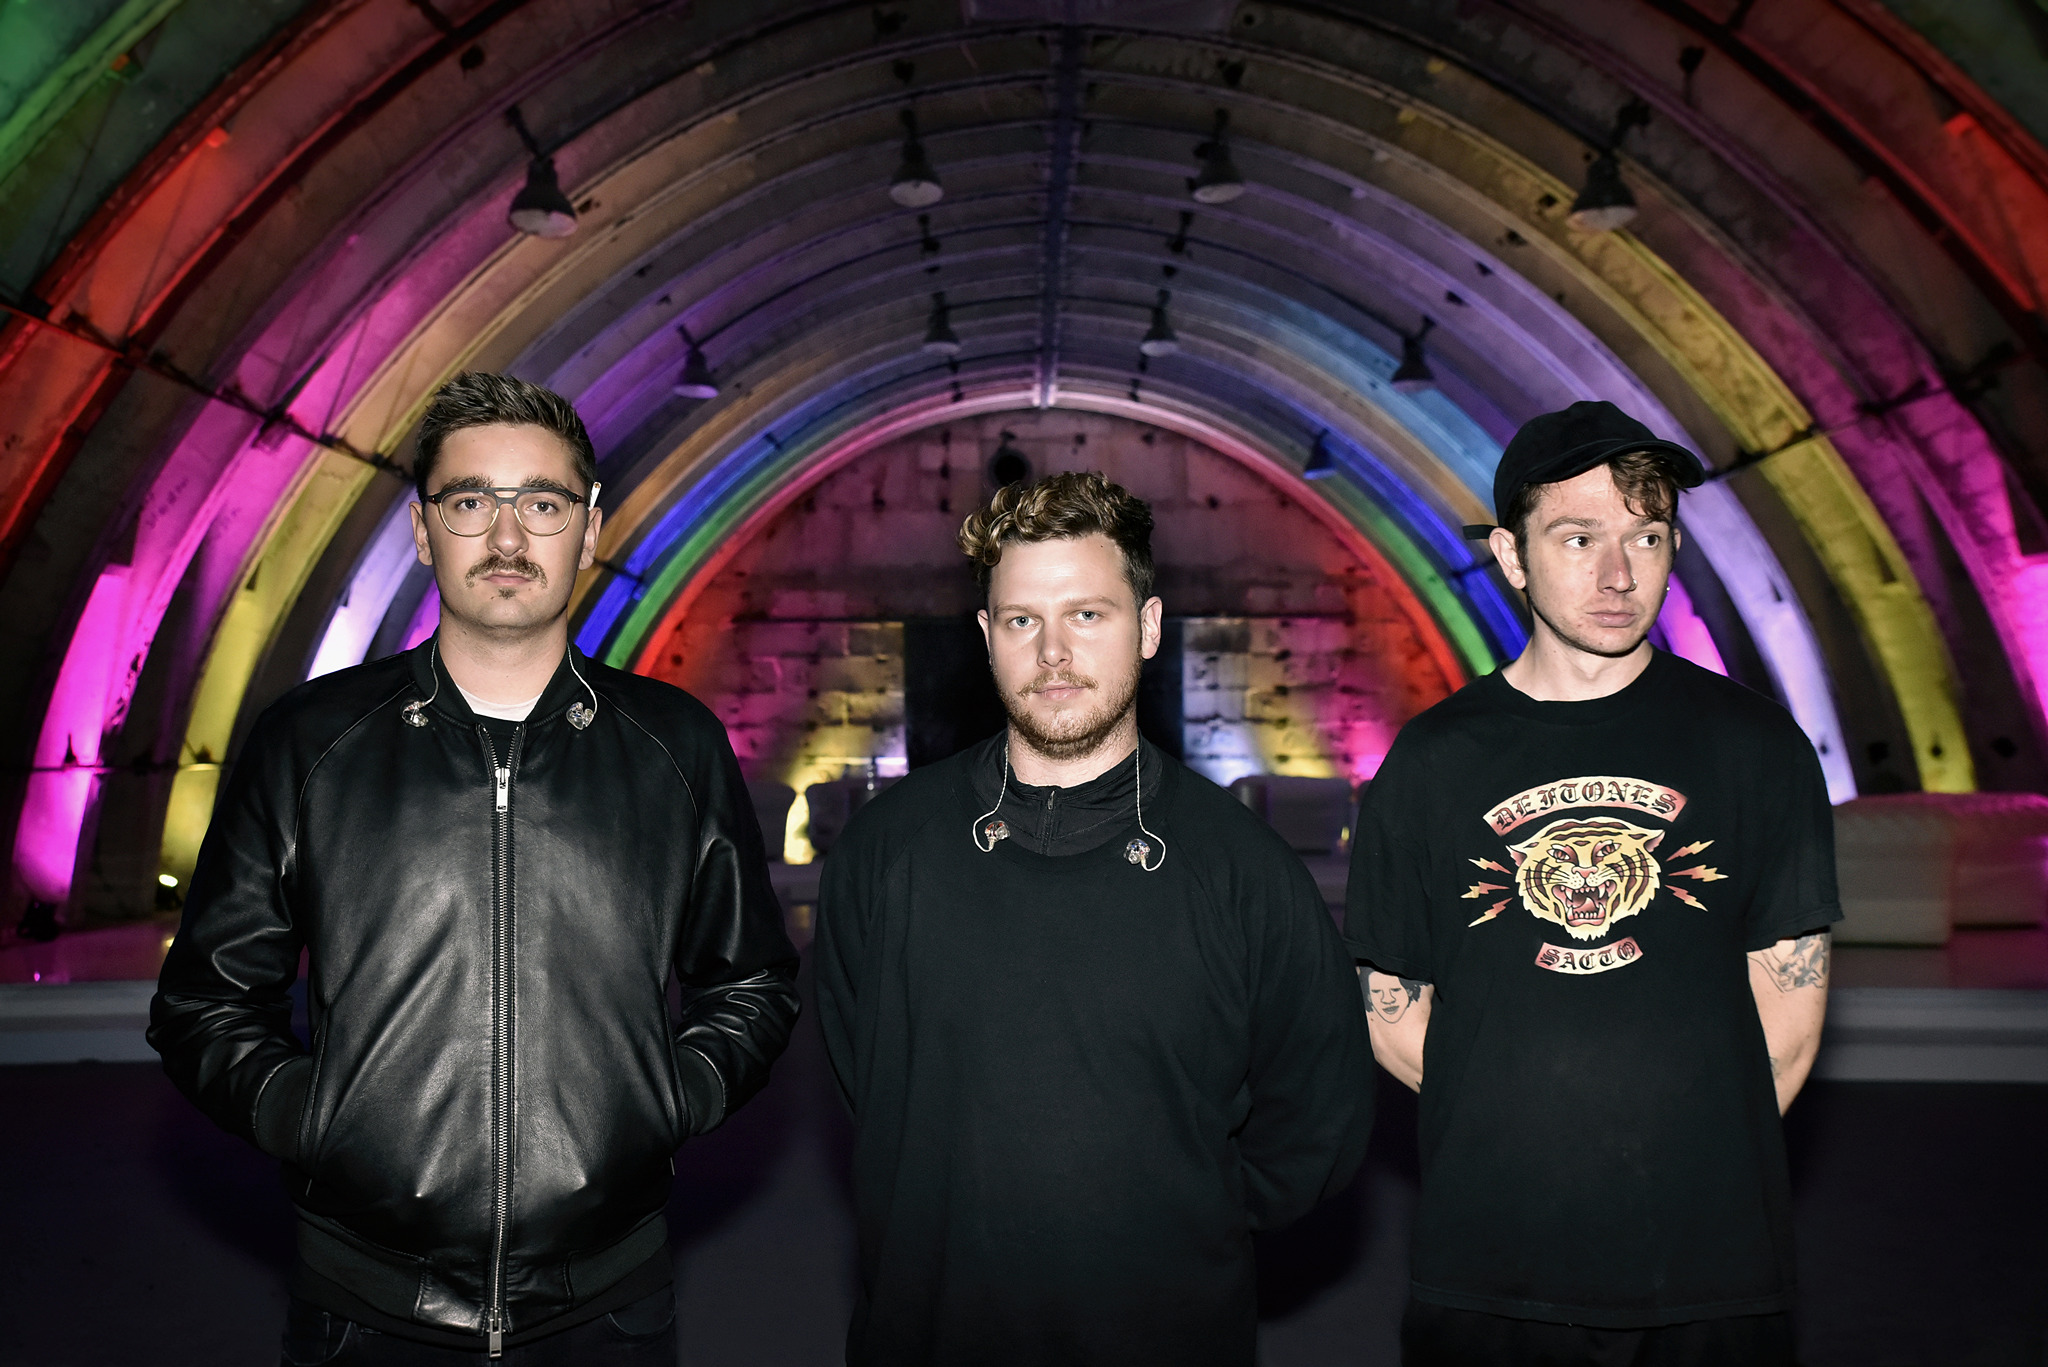 © Tomek Kaminski_Open'er Festival - Alt-J prepare to perform on the first day of Open'er Festival, Gdynia, Poland_01